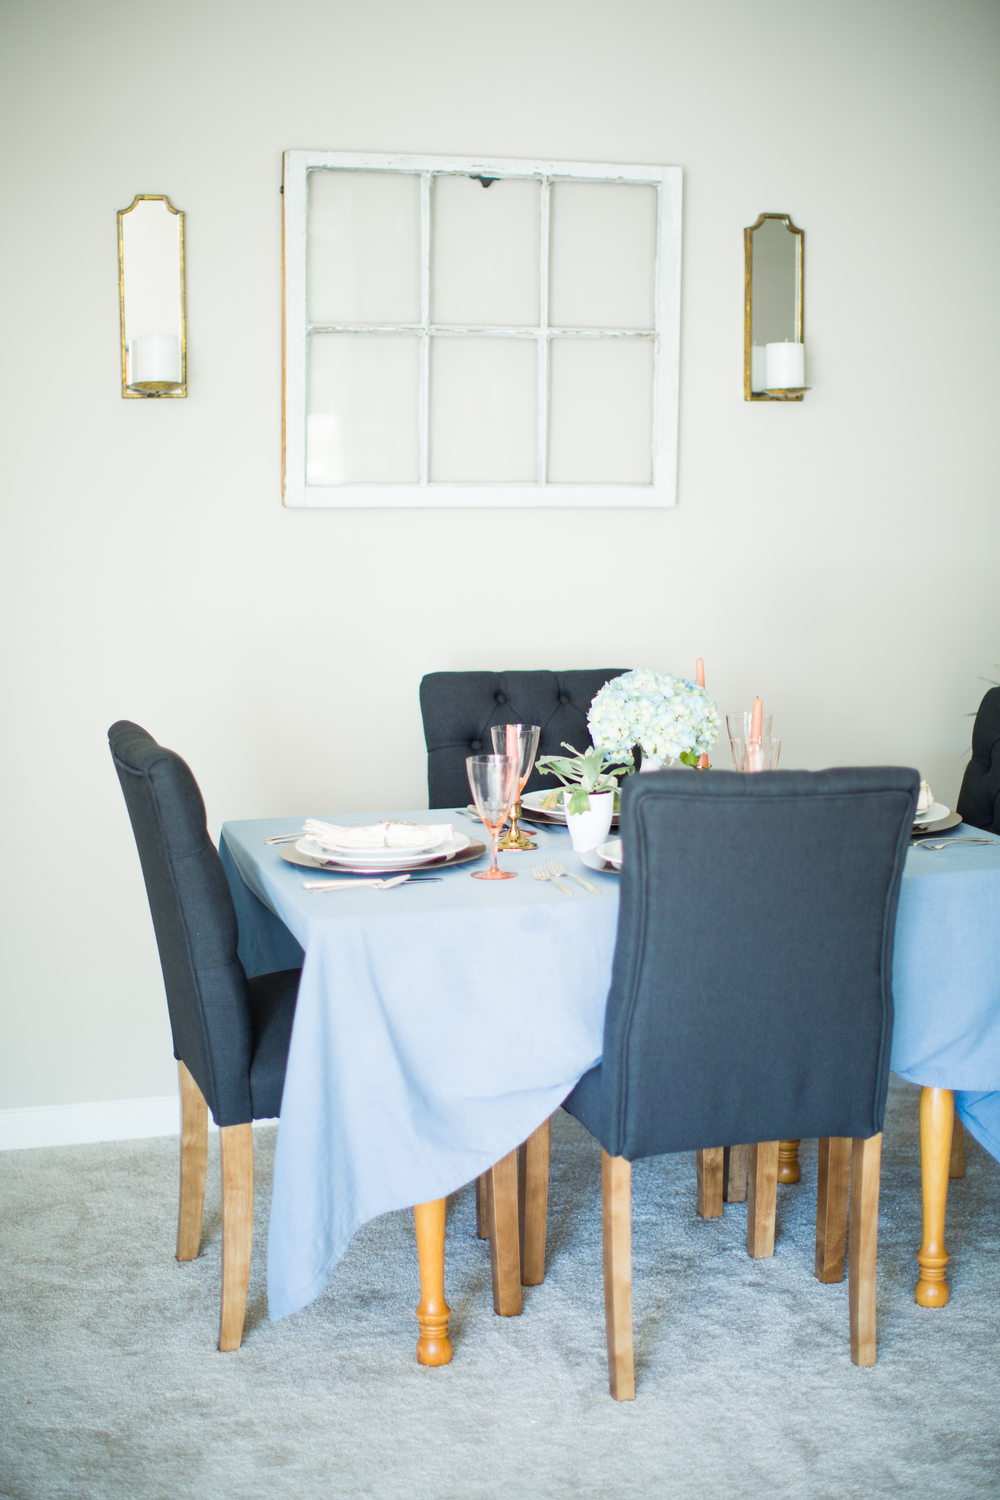 Dining room inspiration | Blue and white home decor | Southern home tour | The School of Styling - theschoolofstyling.com